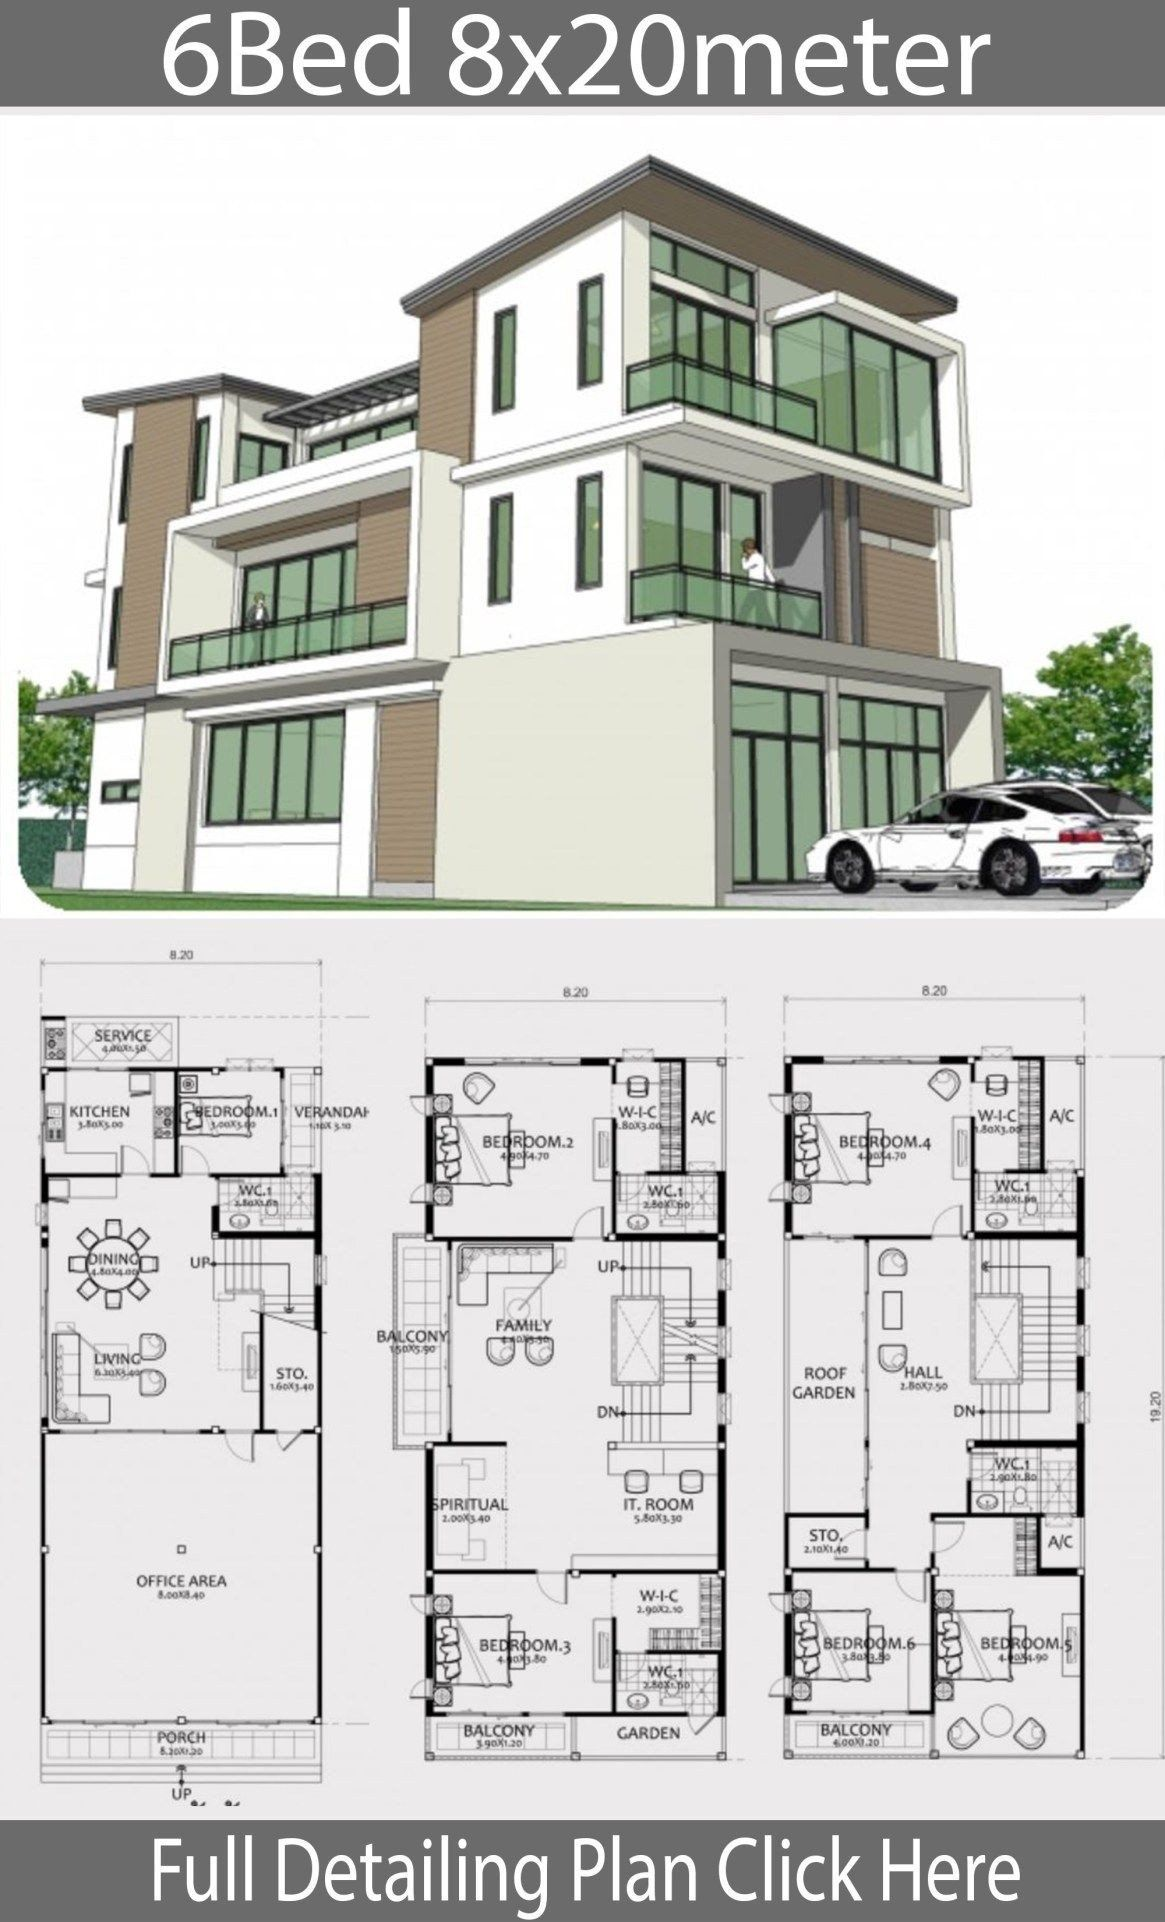 Modern House Designs Floor Plans Home Design Plan 8x20m With 6 Bedrooms In 2020 Two Story House Design Modern House Design Modern House Plans